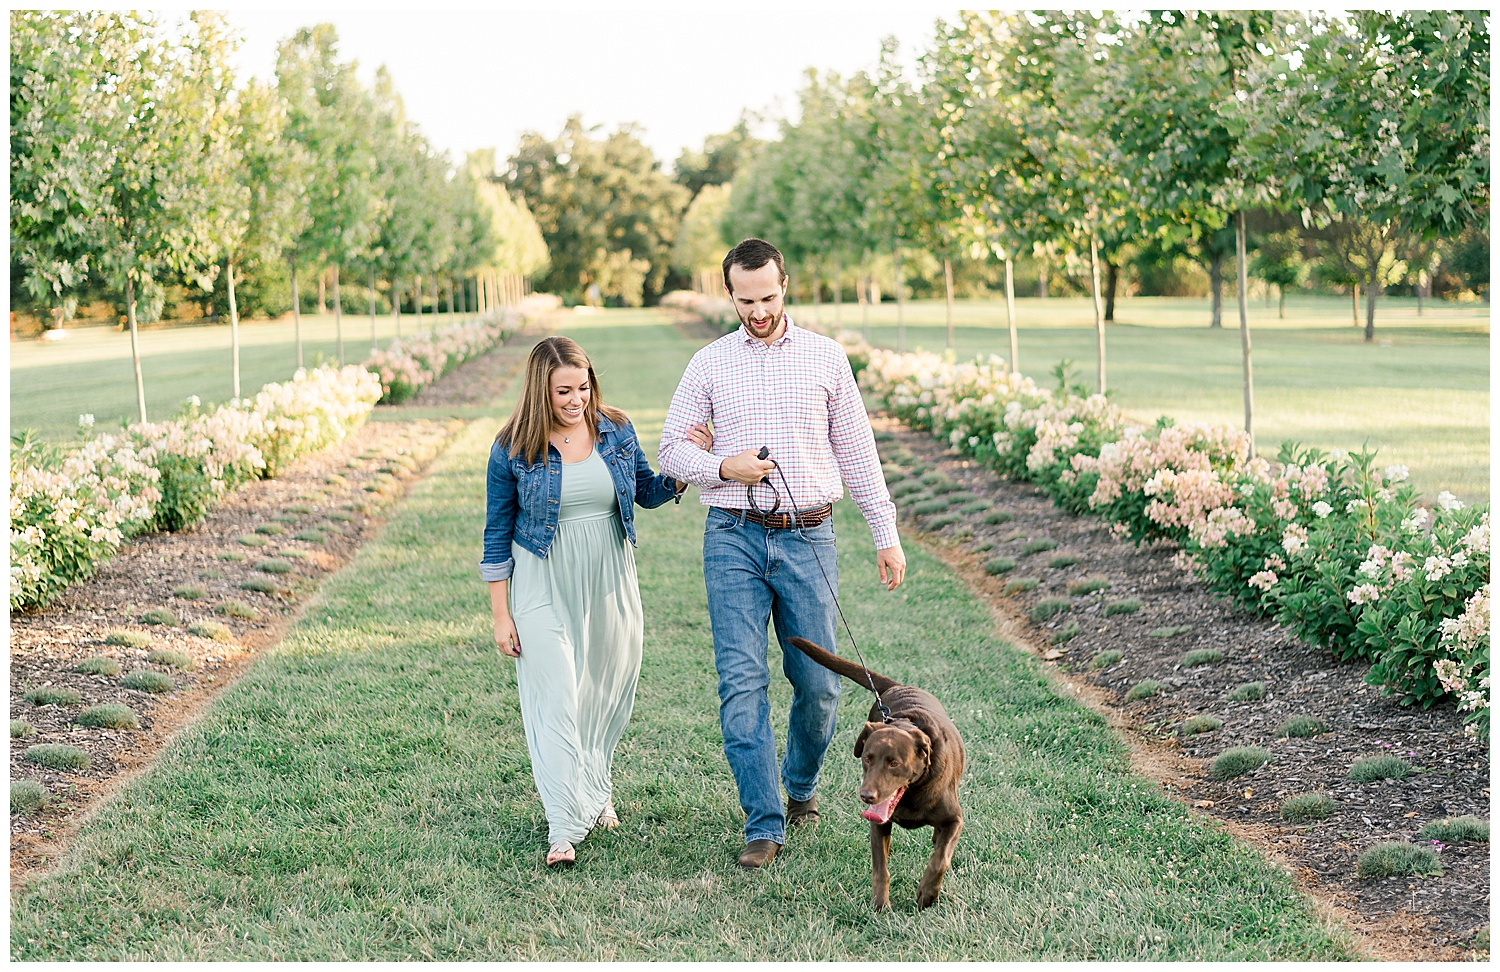 Cox_Arboretum_Anniversary_Session_Miamisburg_Ohio_Cassandra_Janina_Photography_Ohio_Wedding_Photographer_0261.jpg